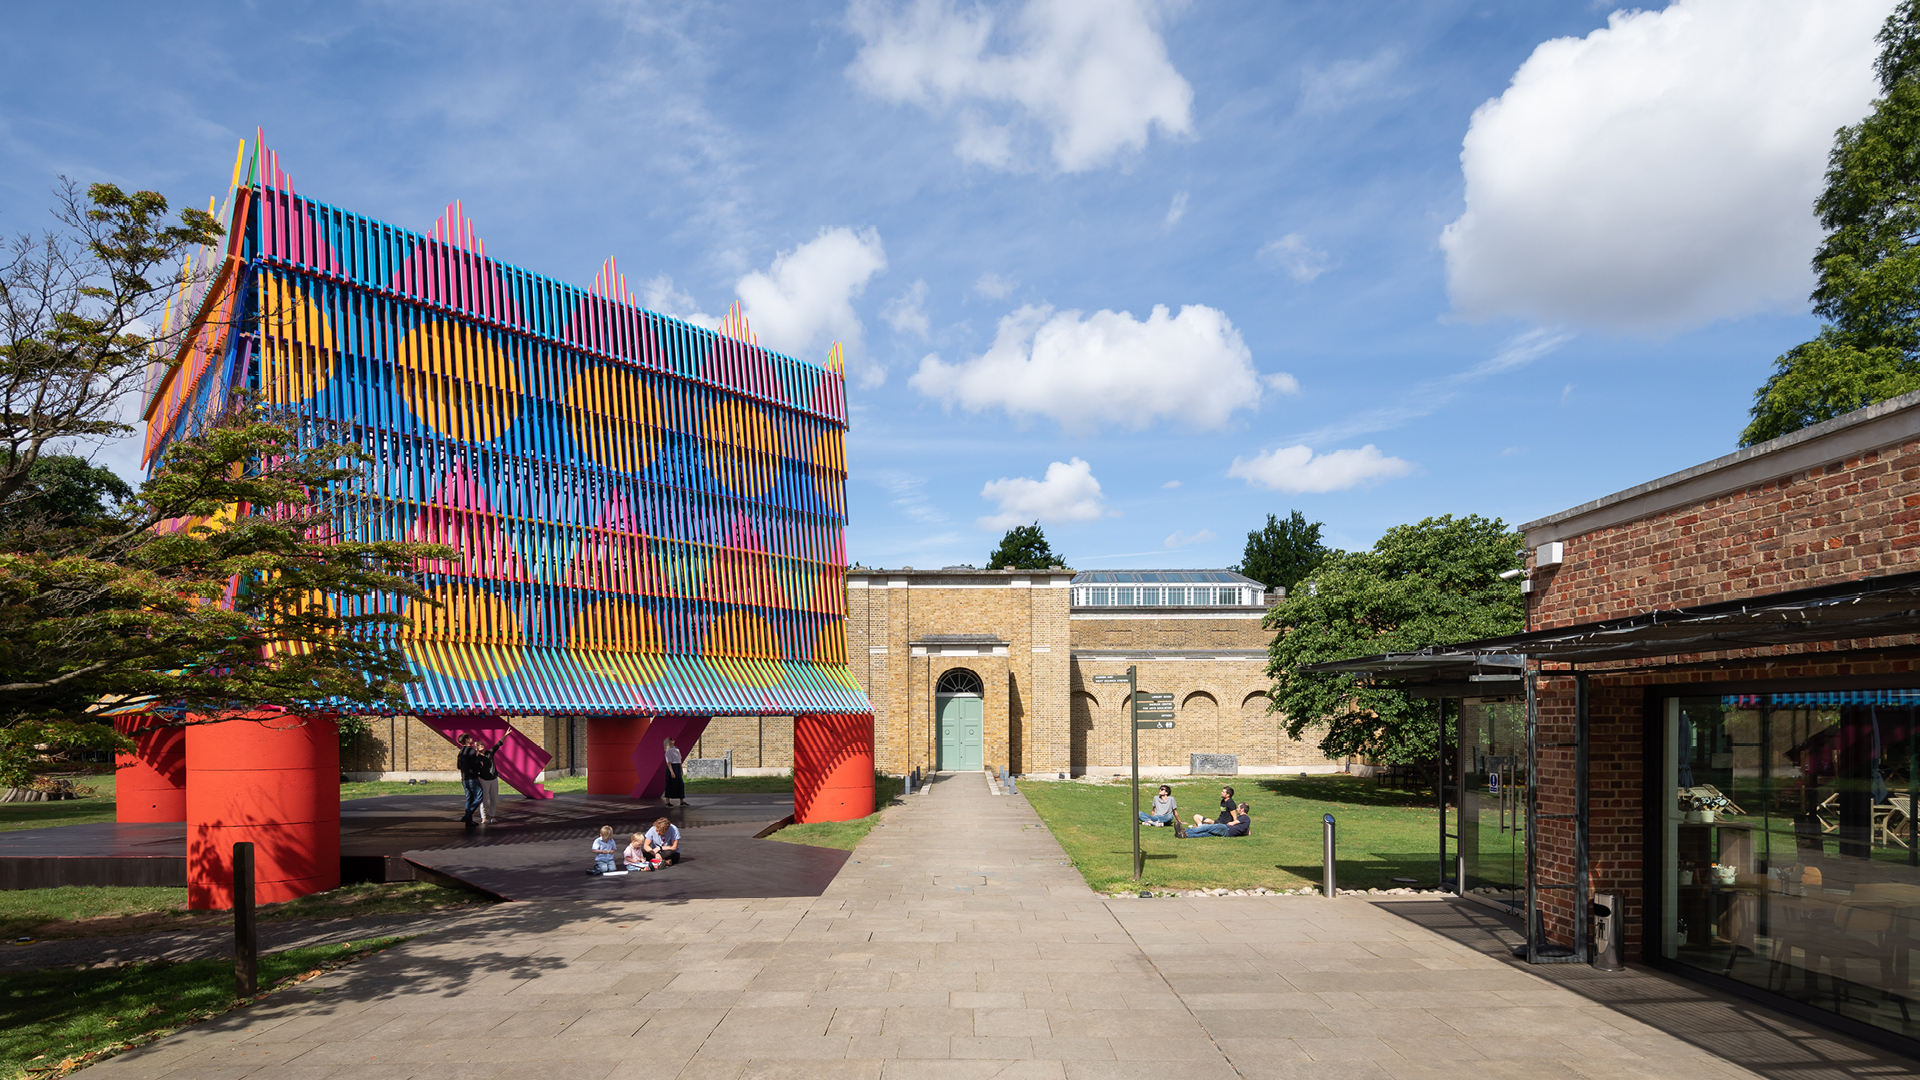 The Colour Palace, a temporary structure designed by Pricegore and Yinka Ilori outside the Dulwich Picture Gallery| The Colour Palace| Pricegore and Yinka Ilori| London Festival of Architecture 2019| STIR